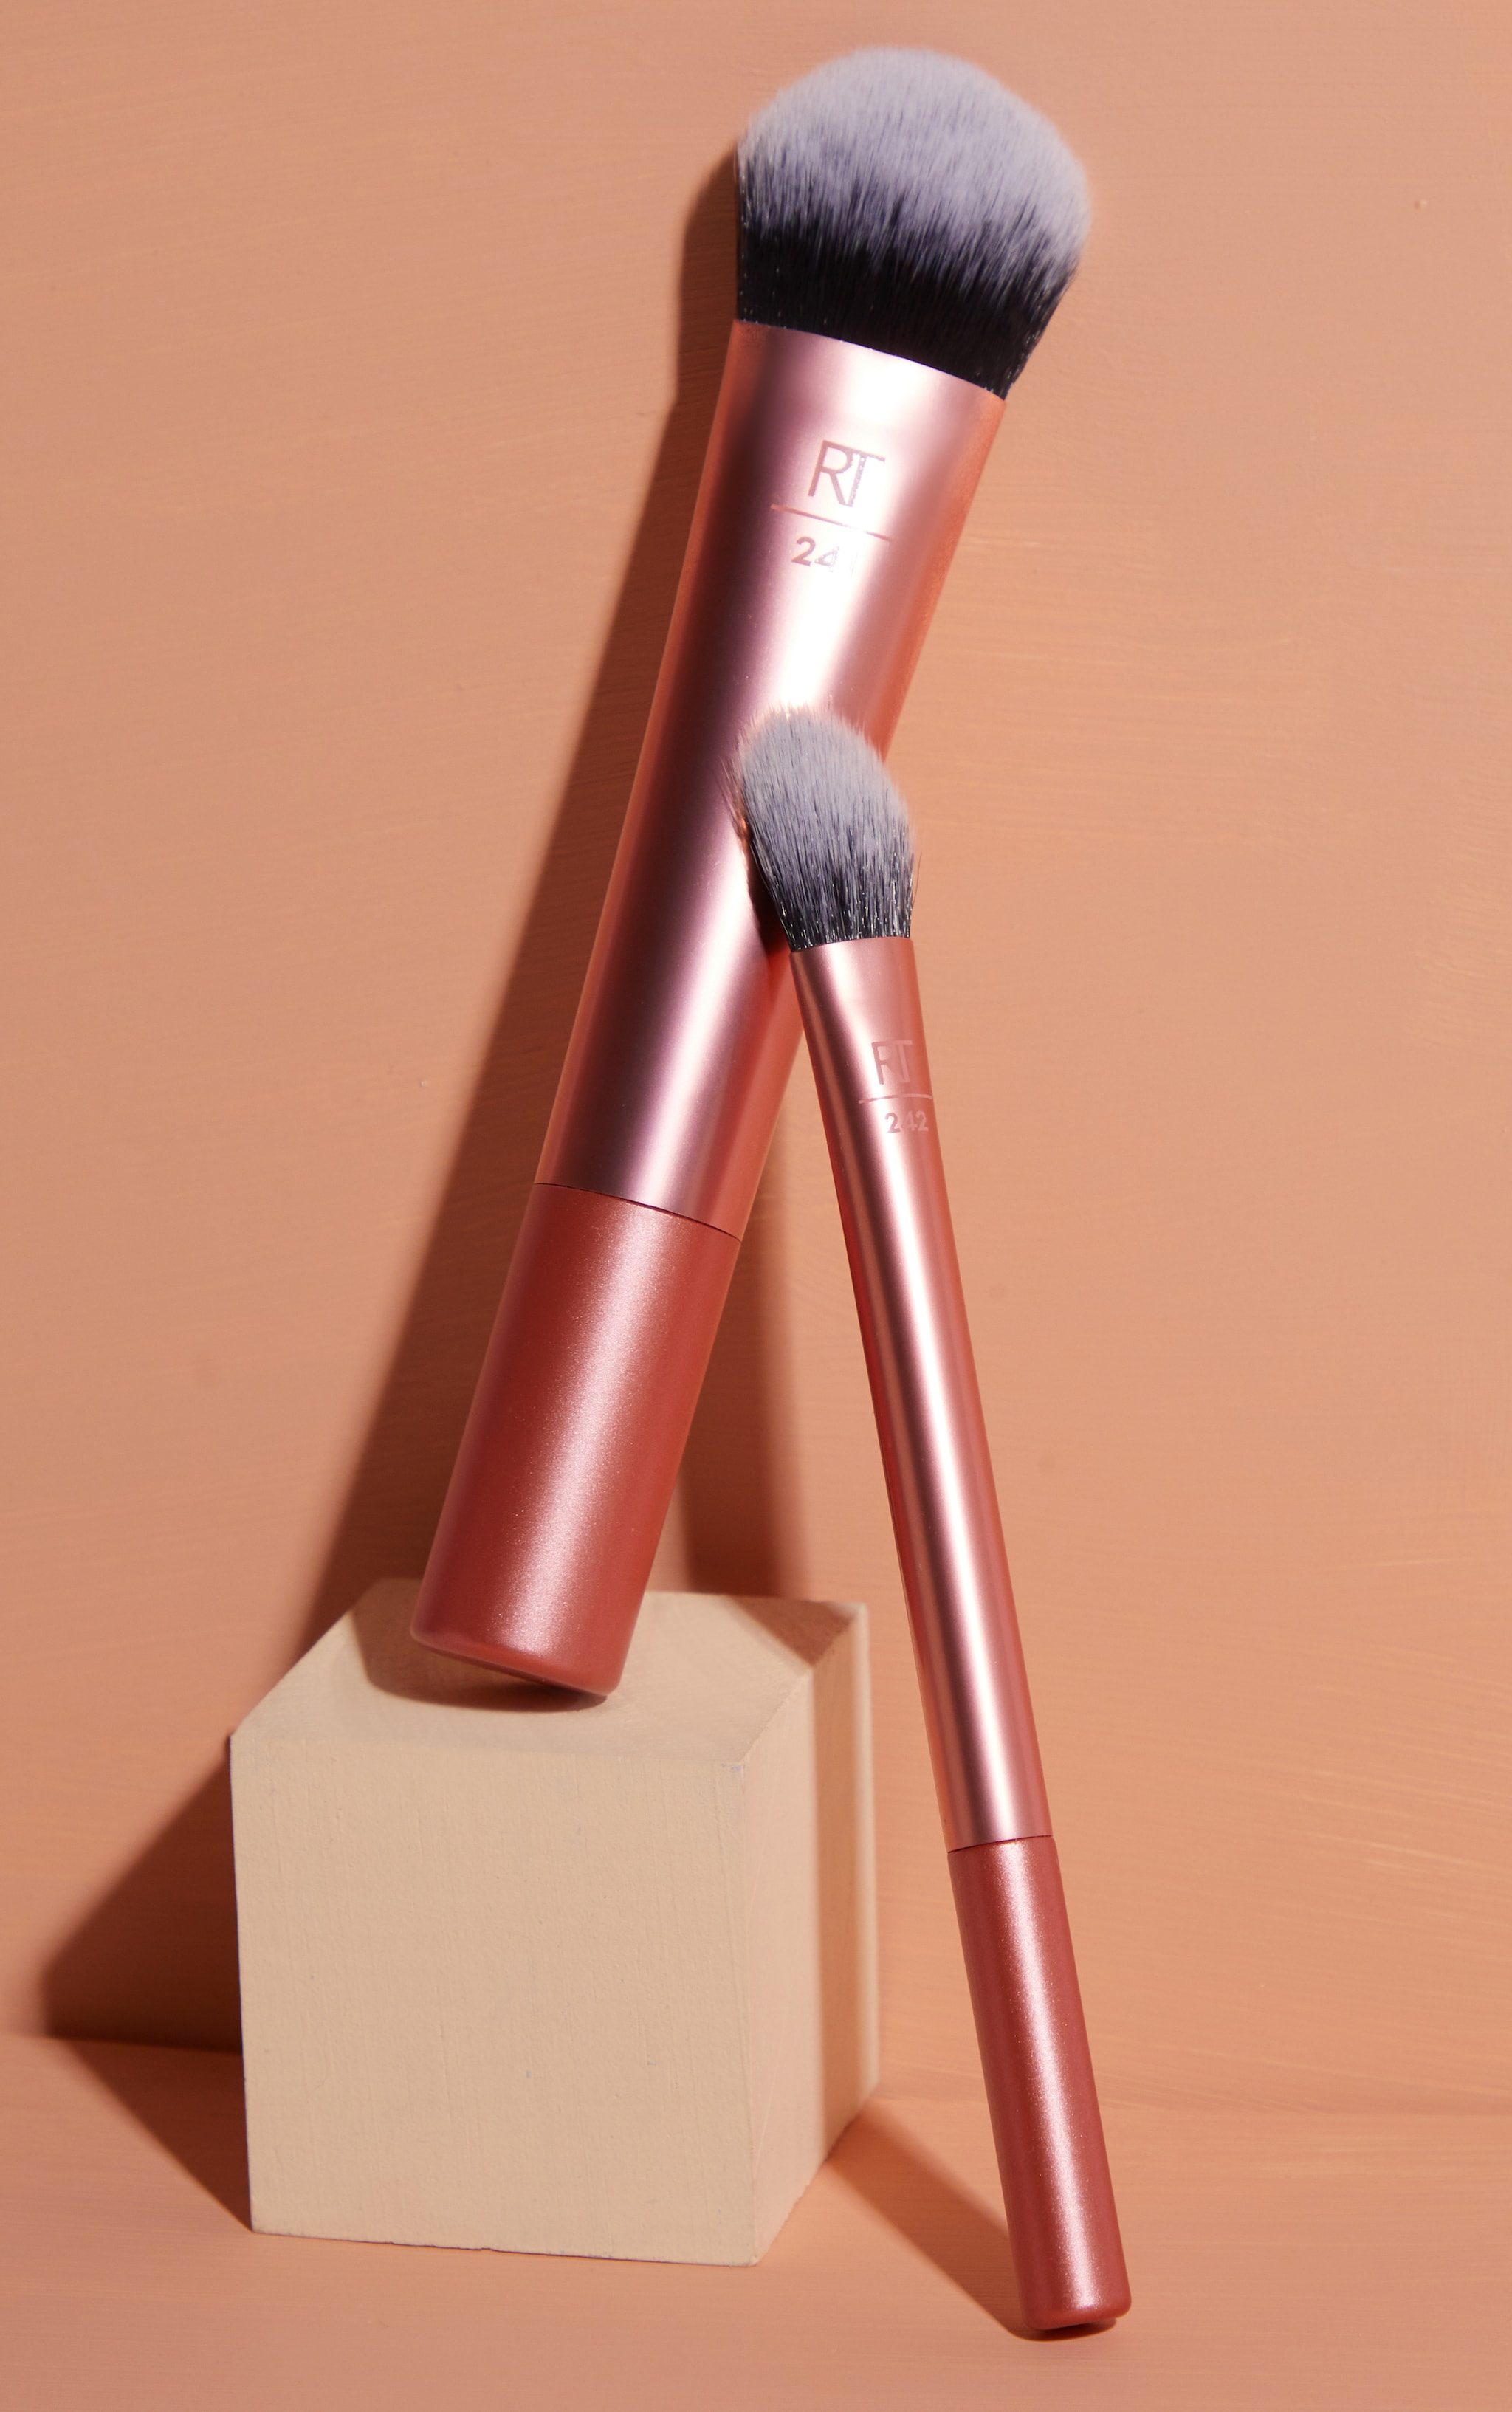 Real Techniques Seamless Complexion 3